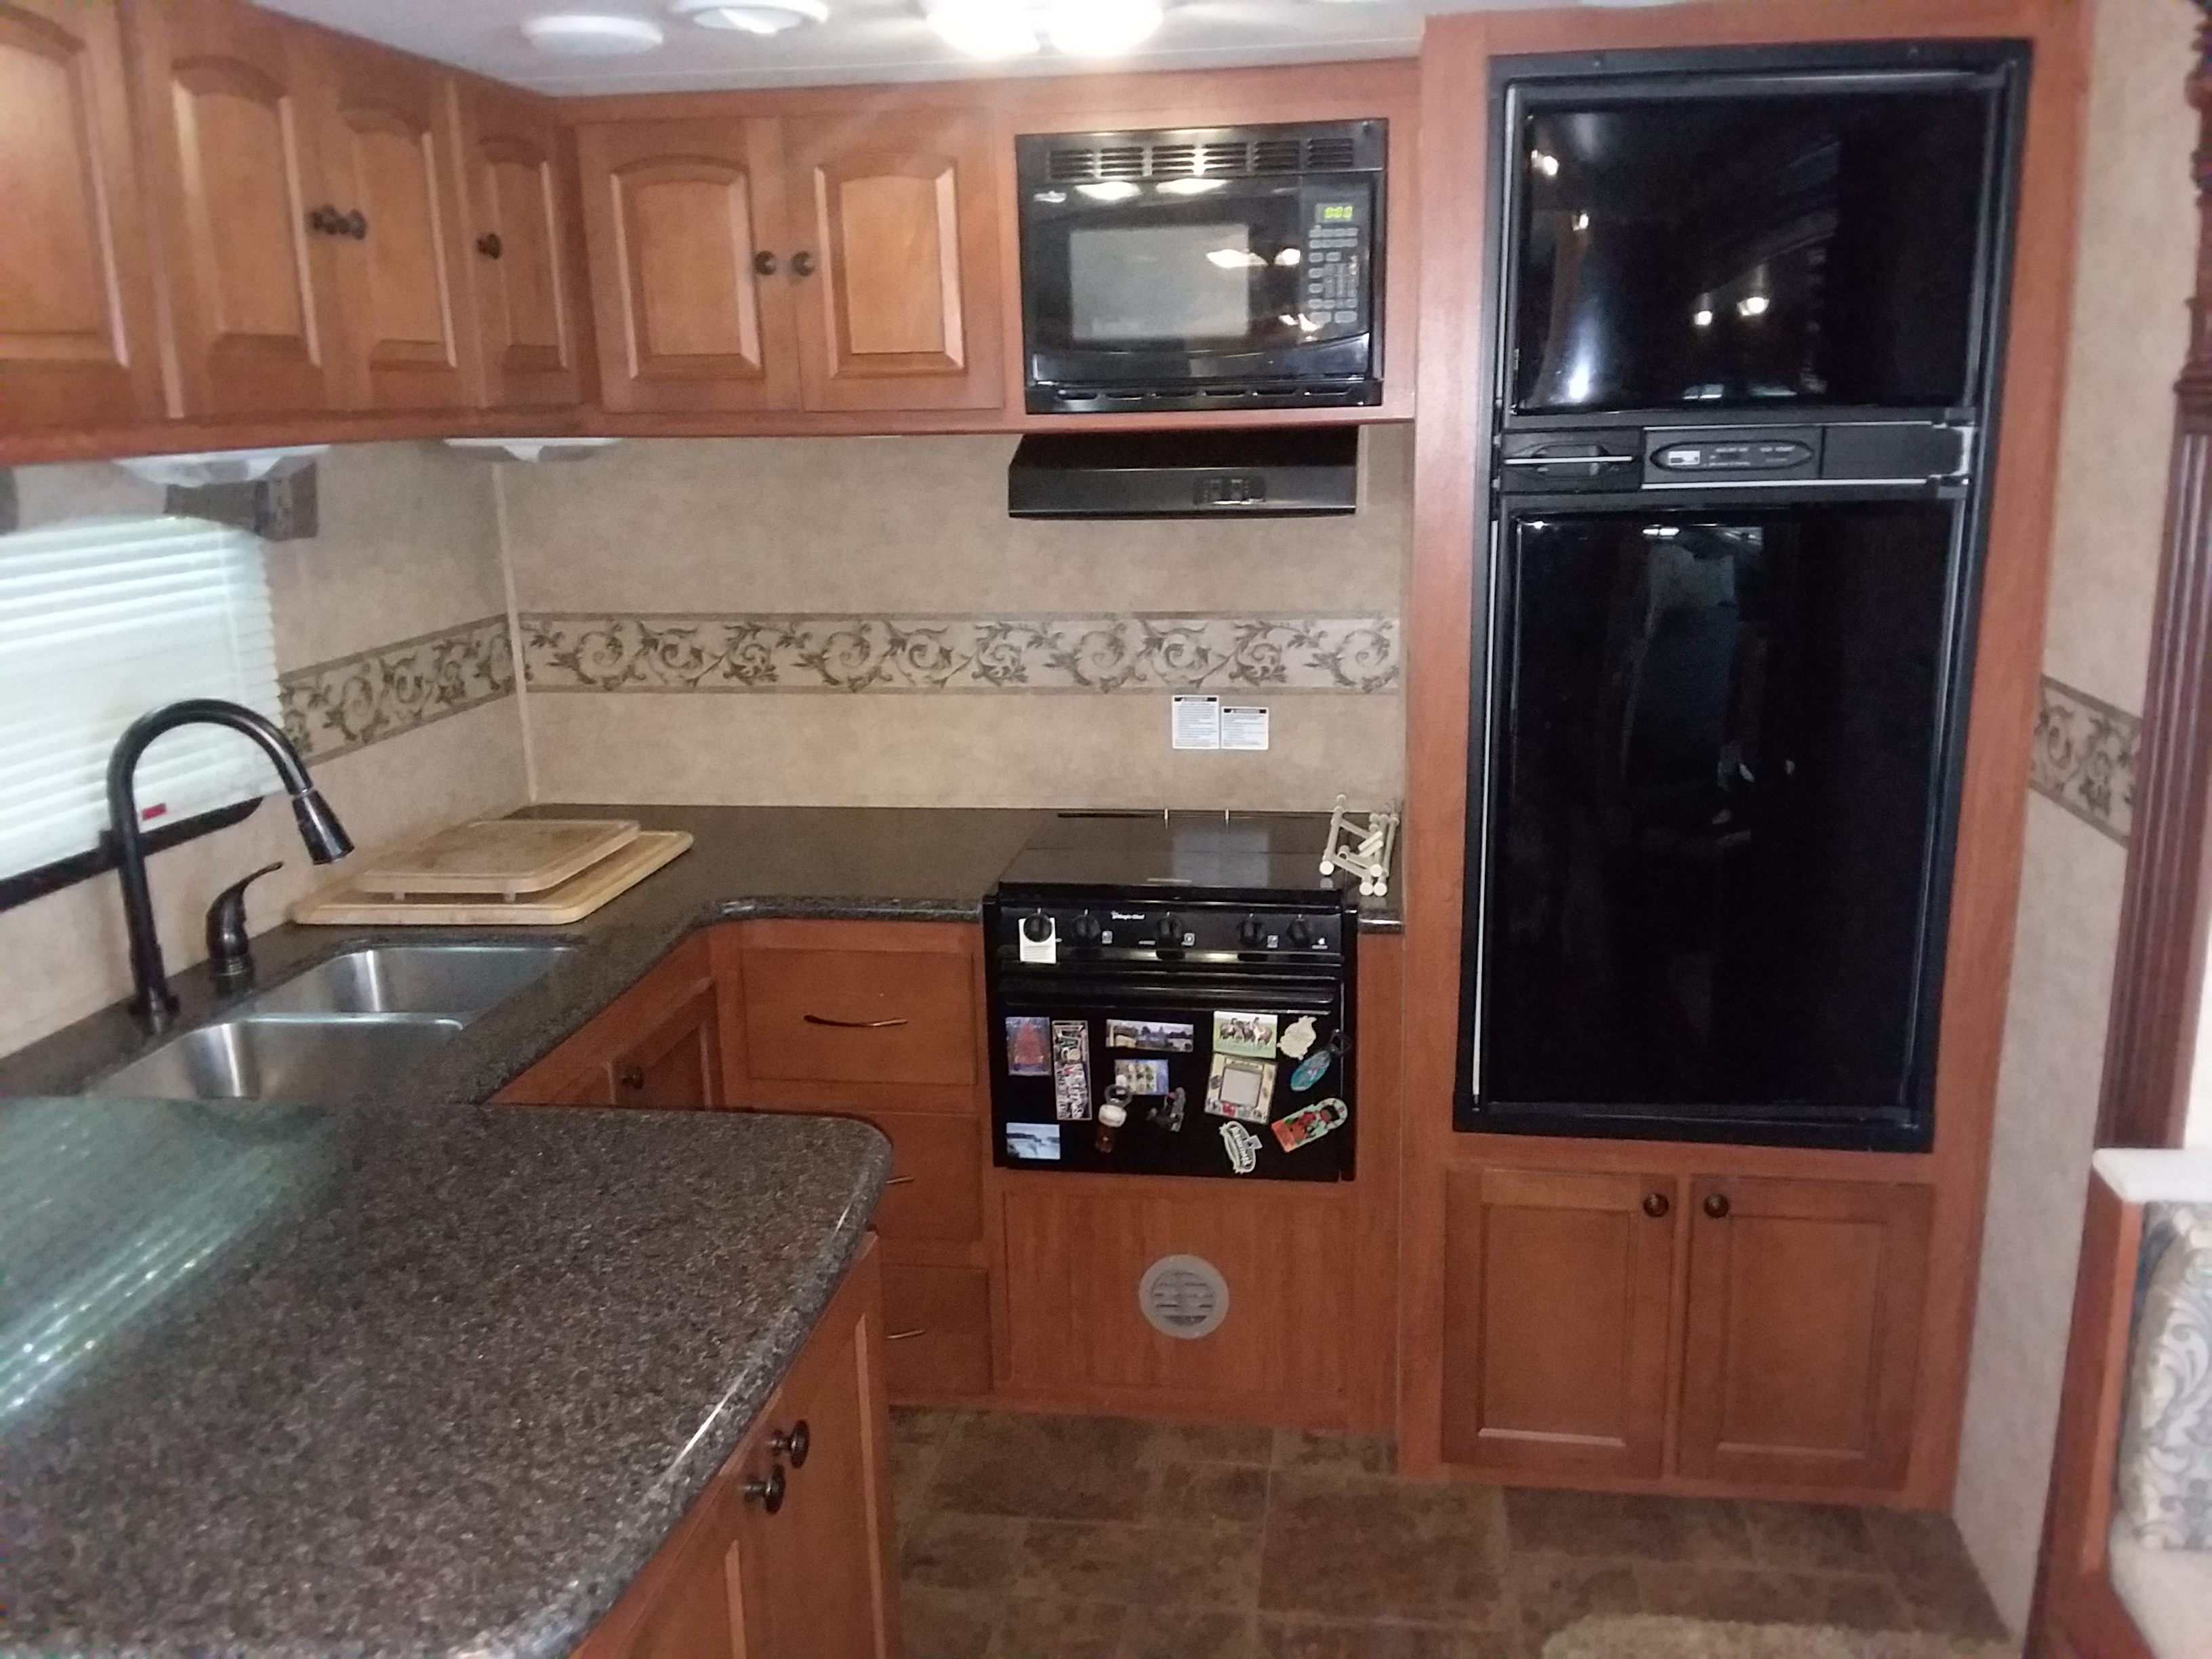 Kitchen- double stainless steel sink, microwave, refrigerator top freezer, gas stove and top and bottom cabinets.